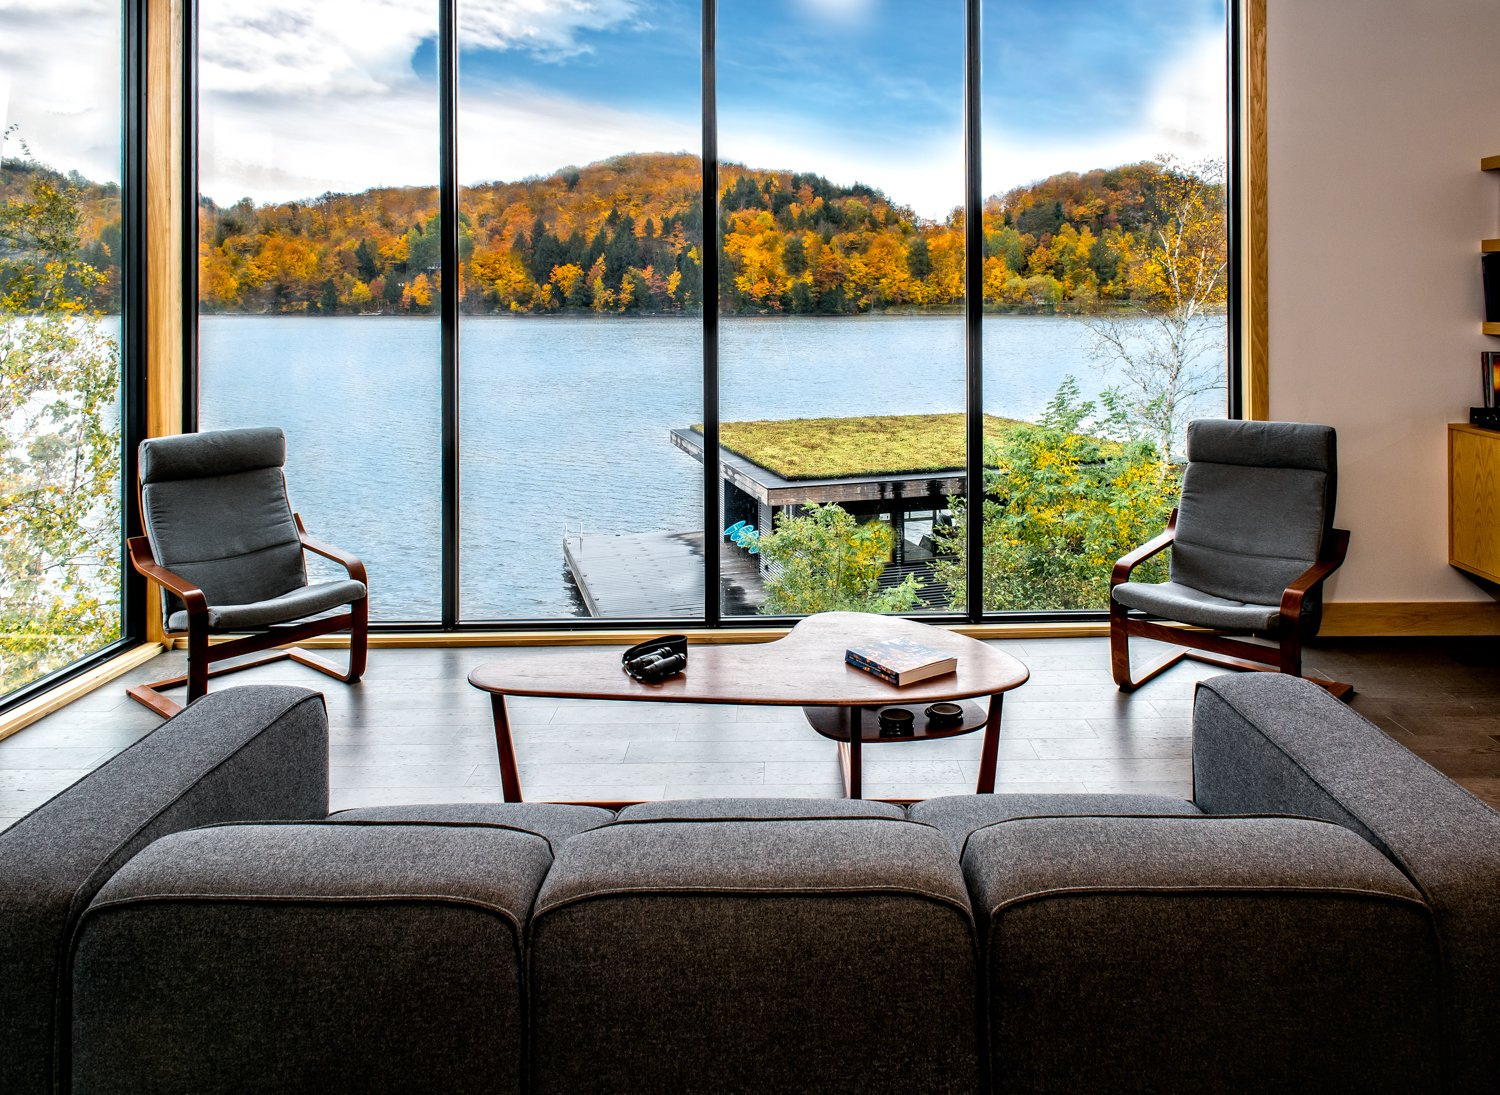 Tall glass windows in the living room frame the view.